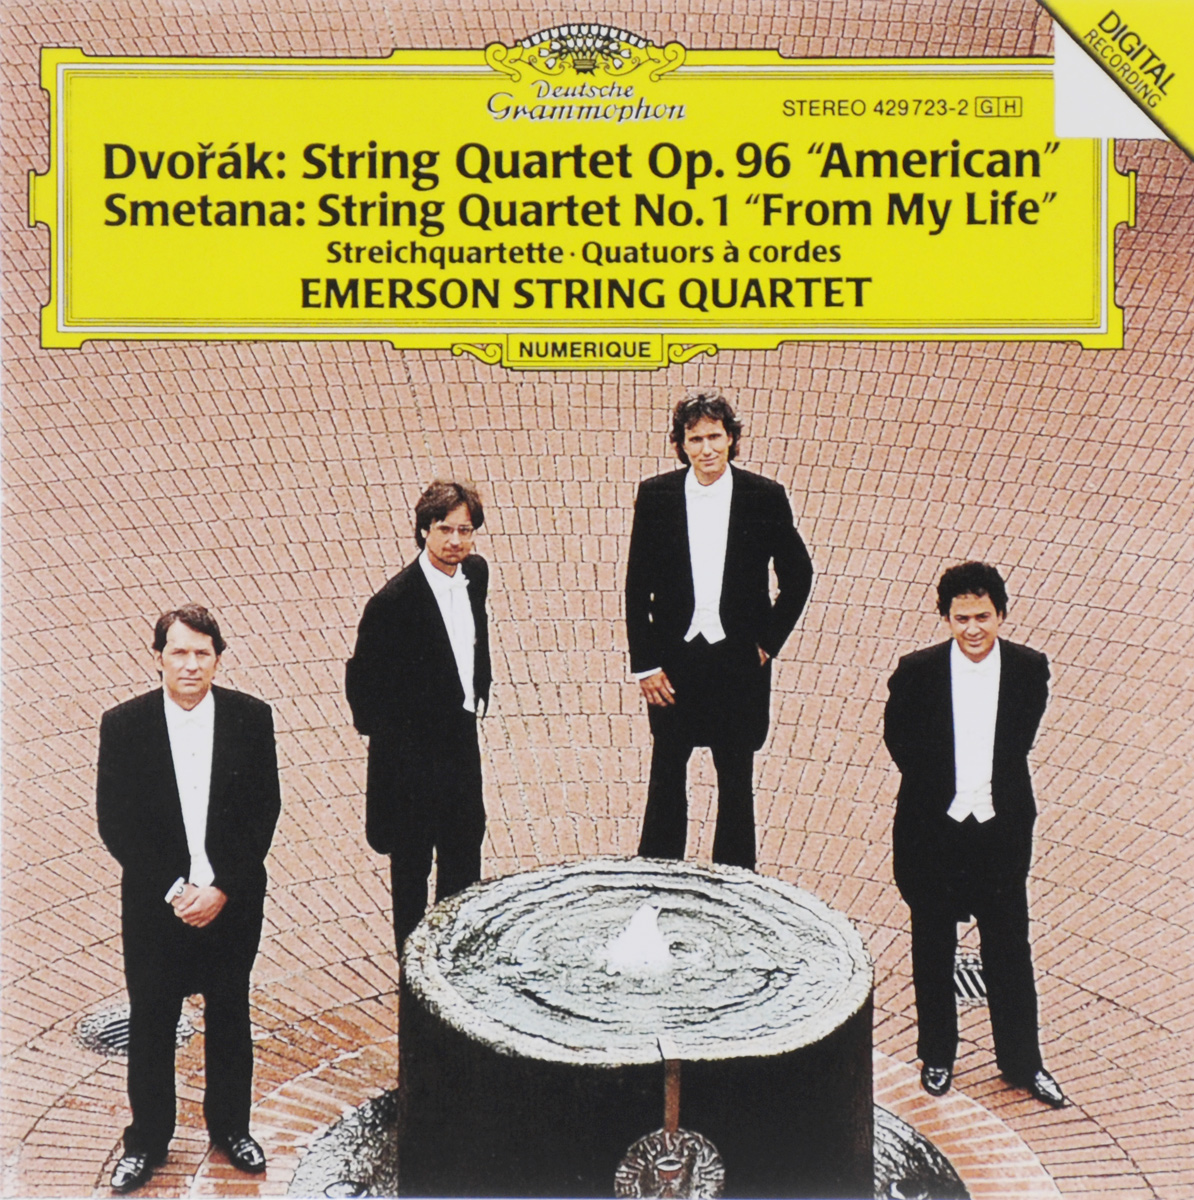 Emerson String Quartet Emerson String Quartet. String Quartet Op. 96 American / String Quartet No. 1 From My Life emerson string quartet complete string quartets mendelssohn emerson string quartet 4 cd